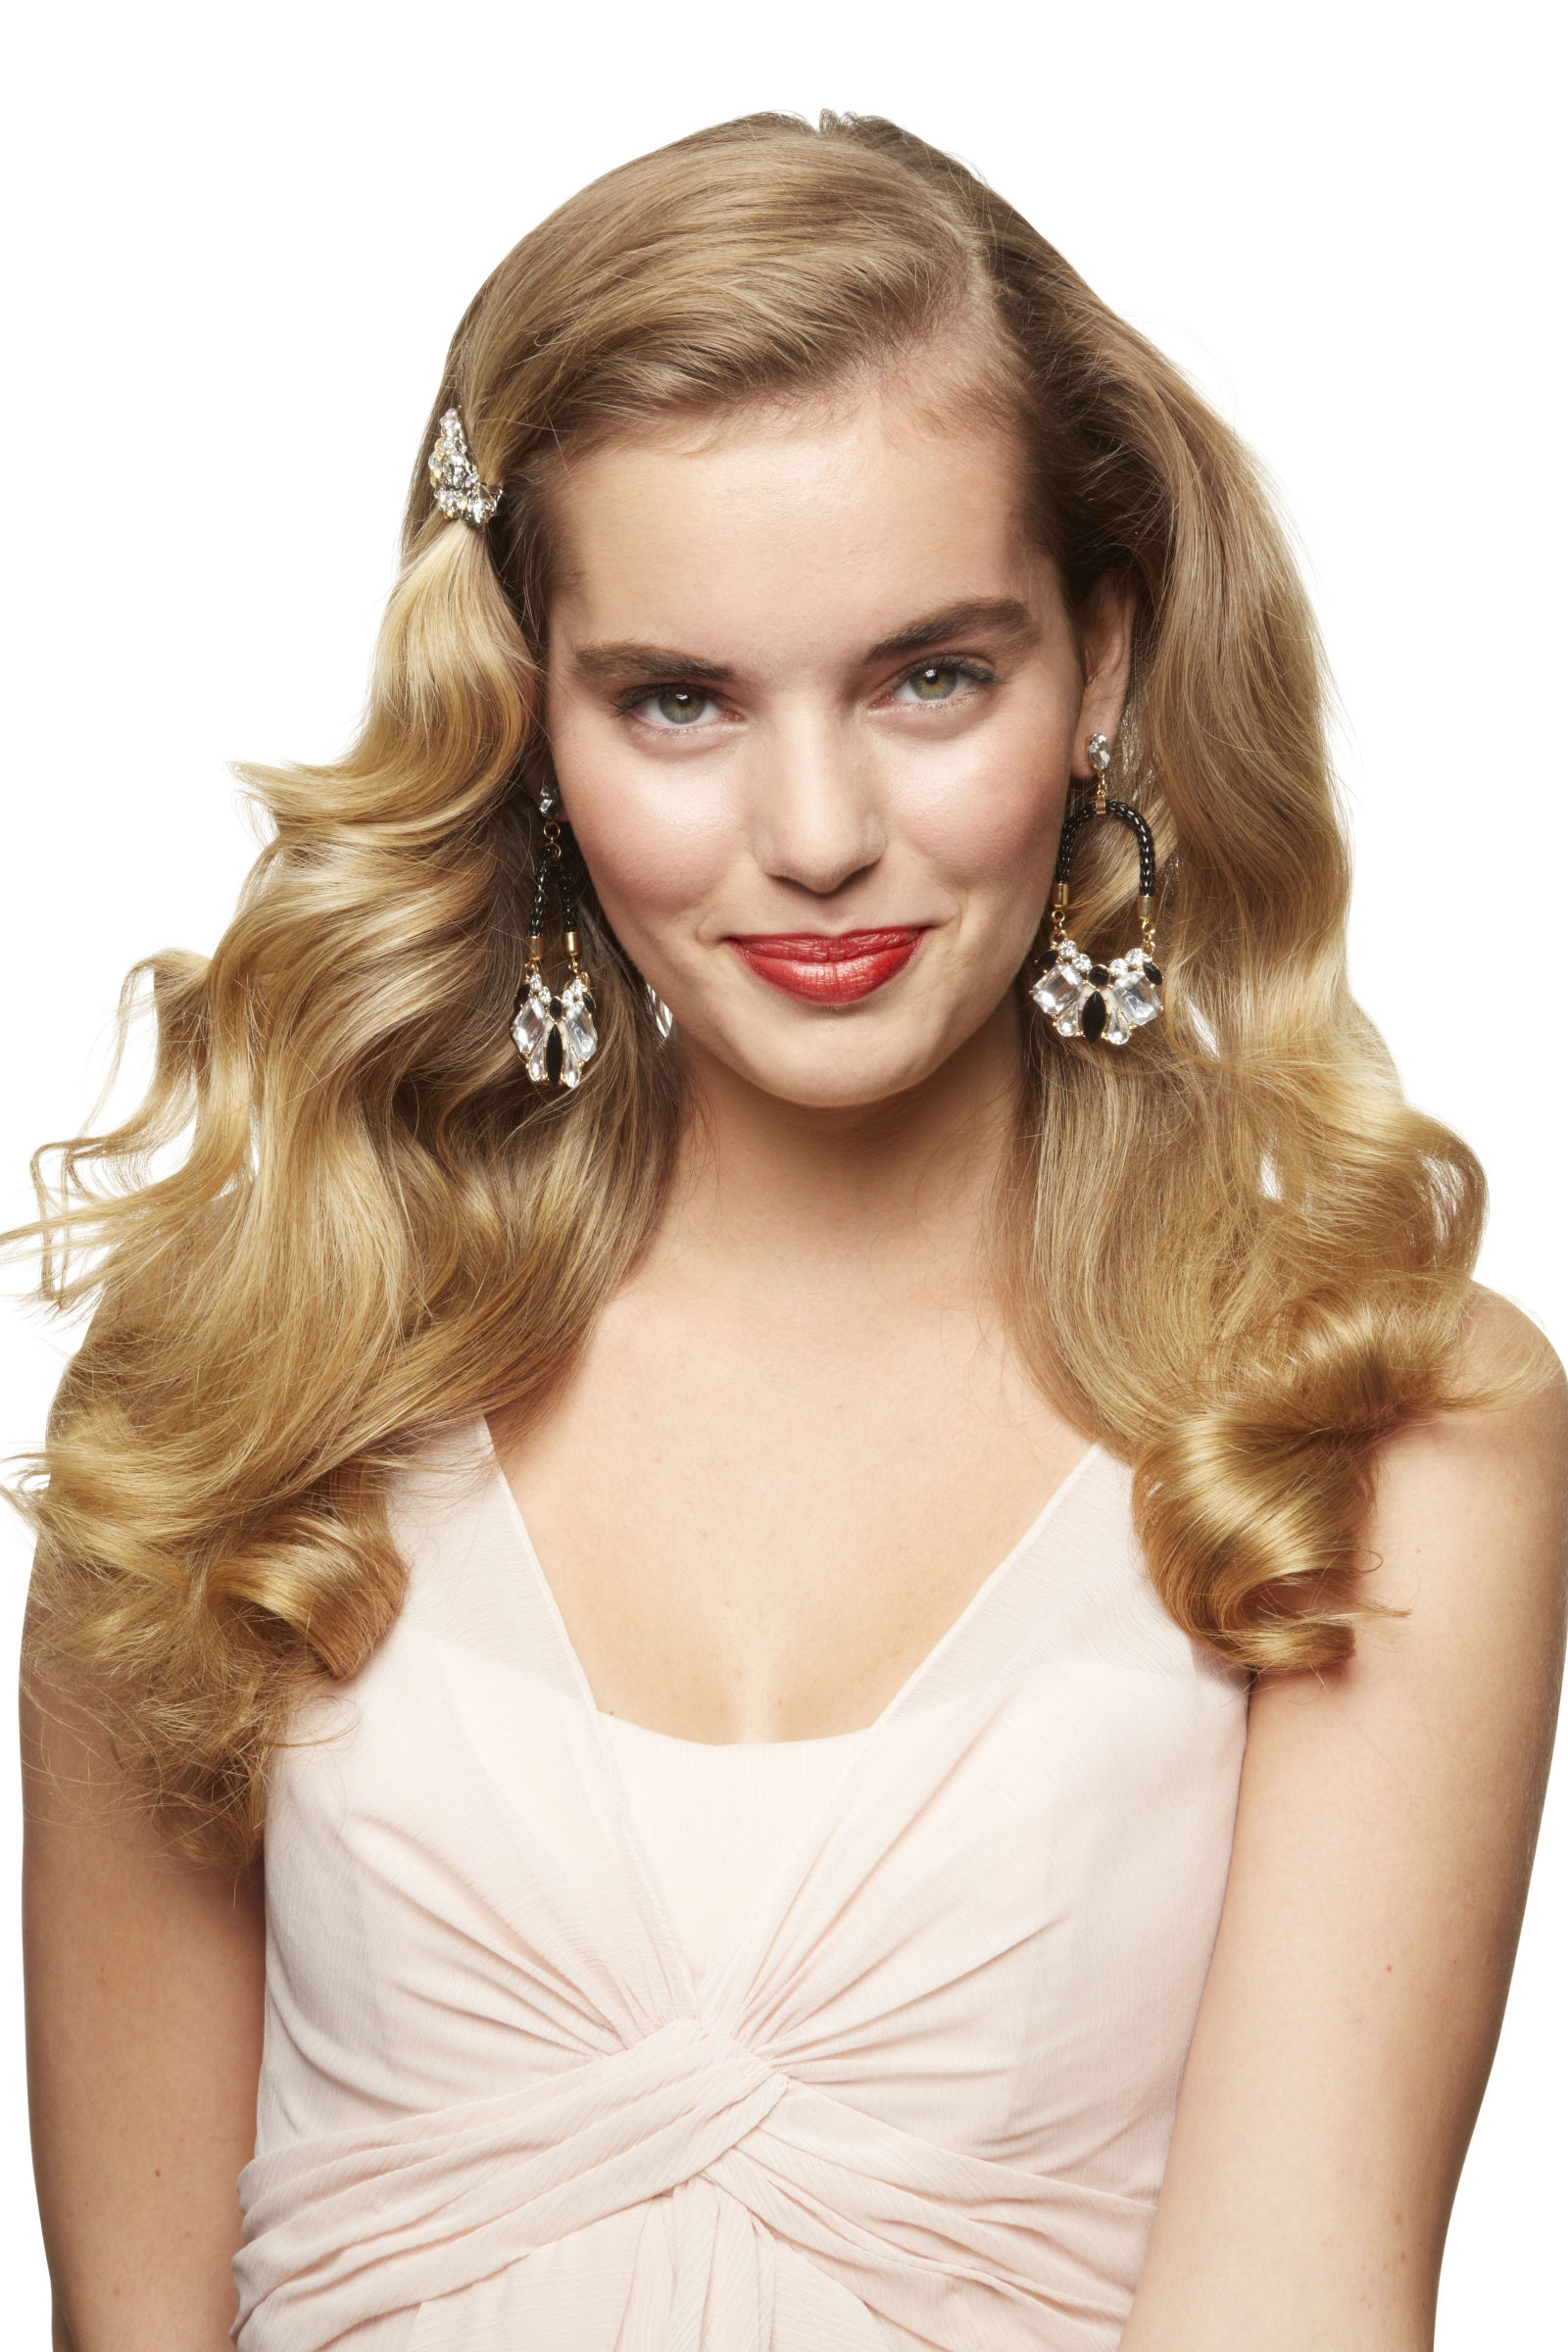 Swell 20 Long Hairstyles Haircuts Amp Trends In 2015 Short Hairstyles Gunalazisus